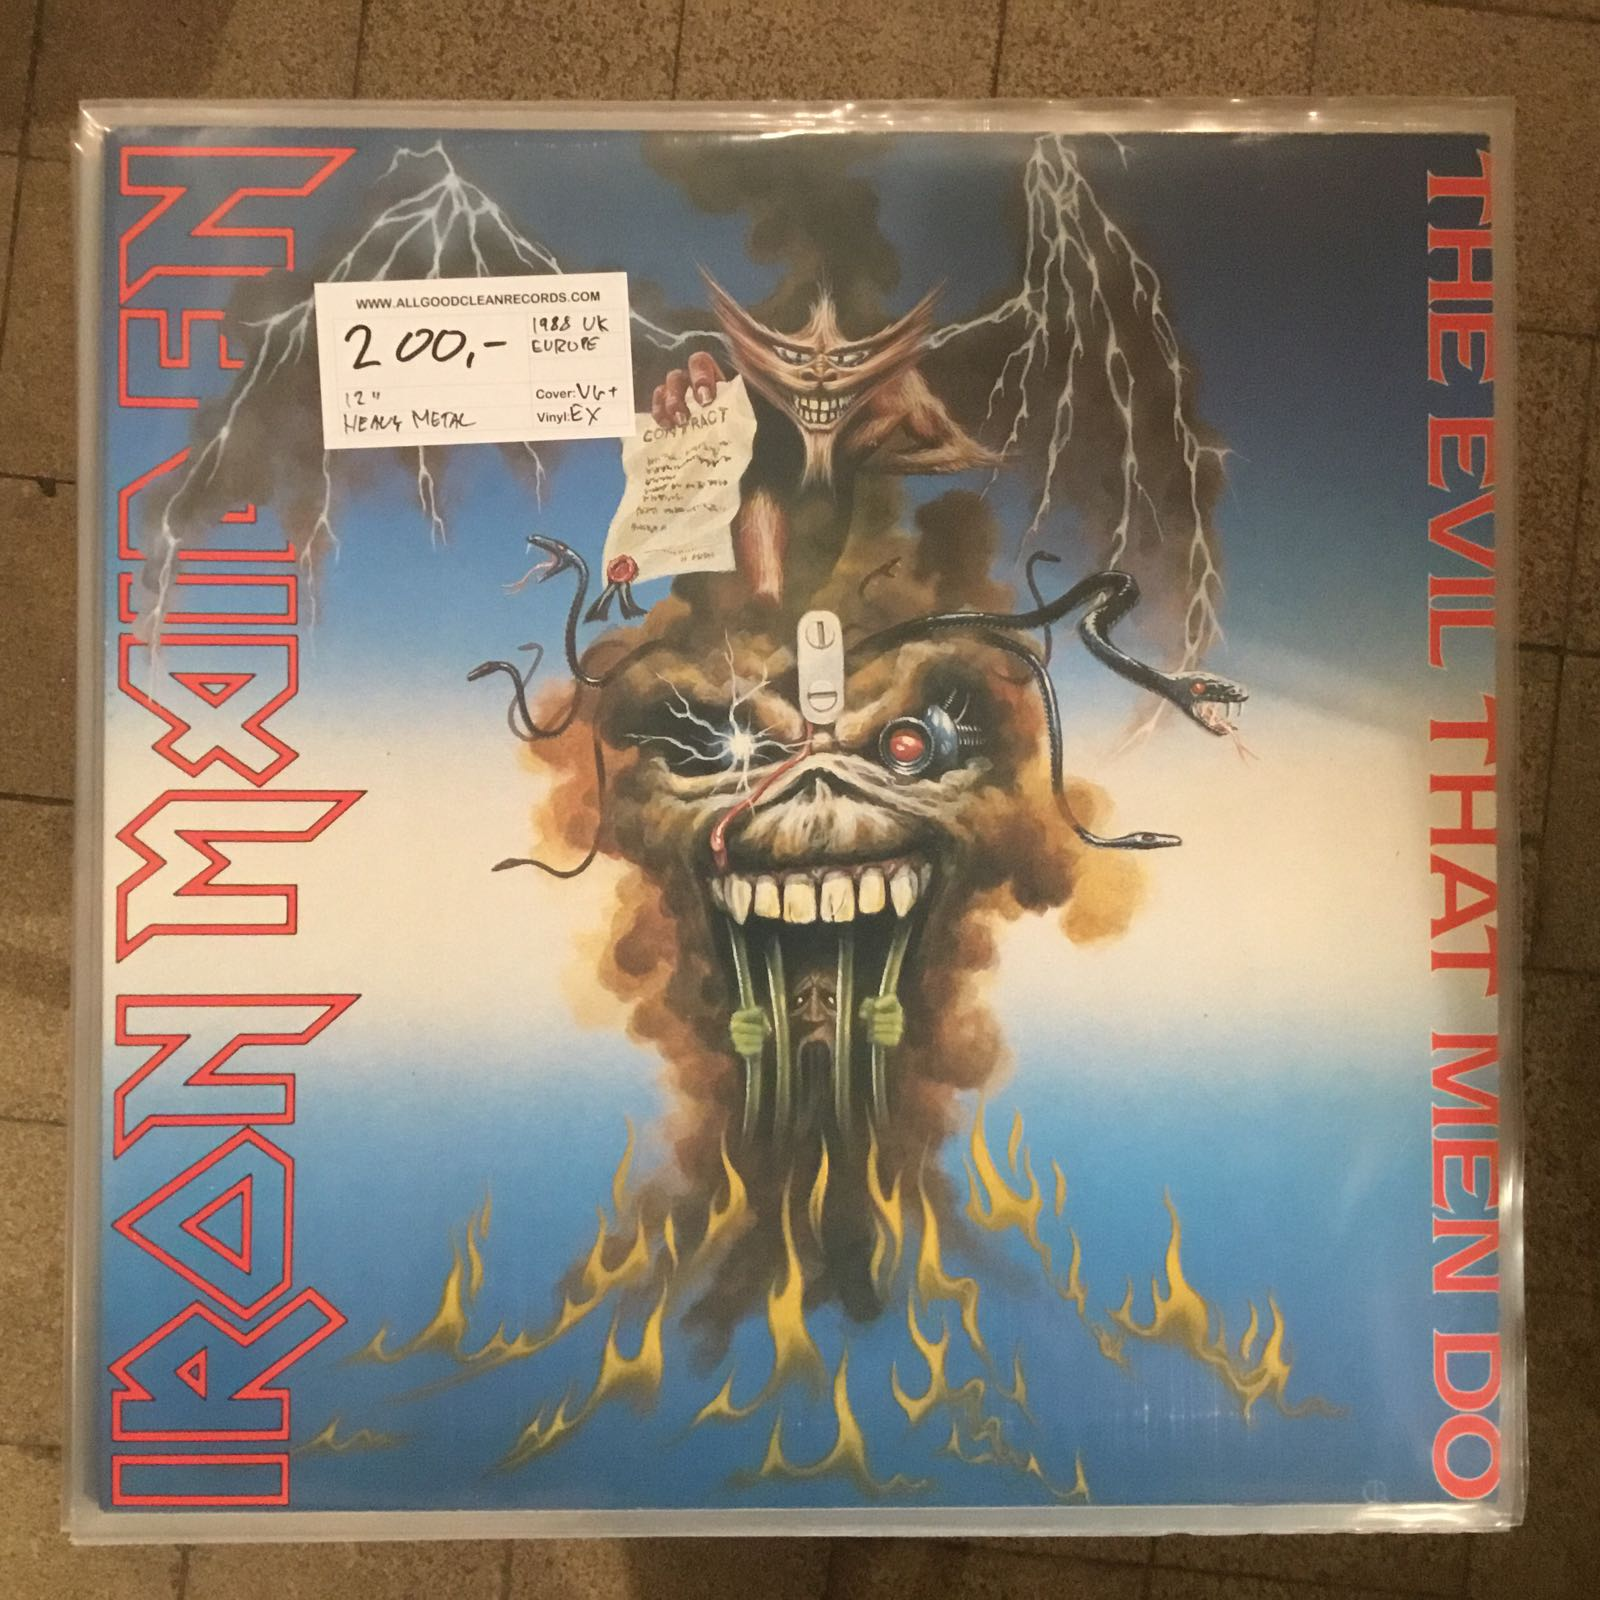 "Iron Maiden – The Evil That Men Do [12"" Maxi] (2. hand)"